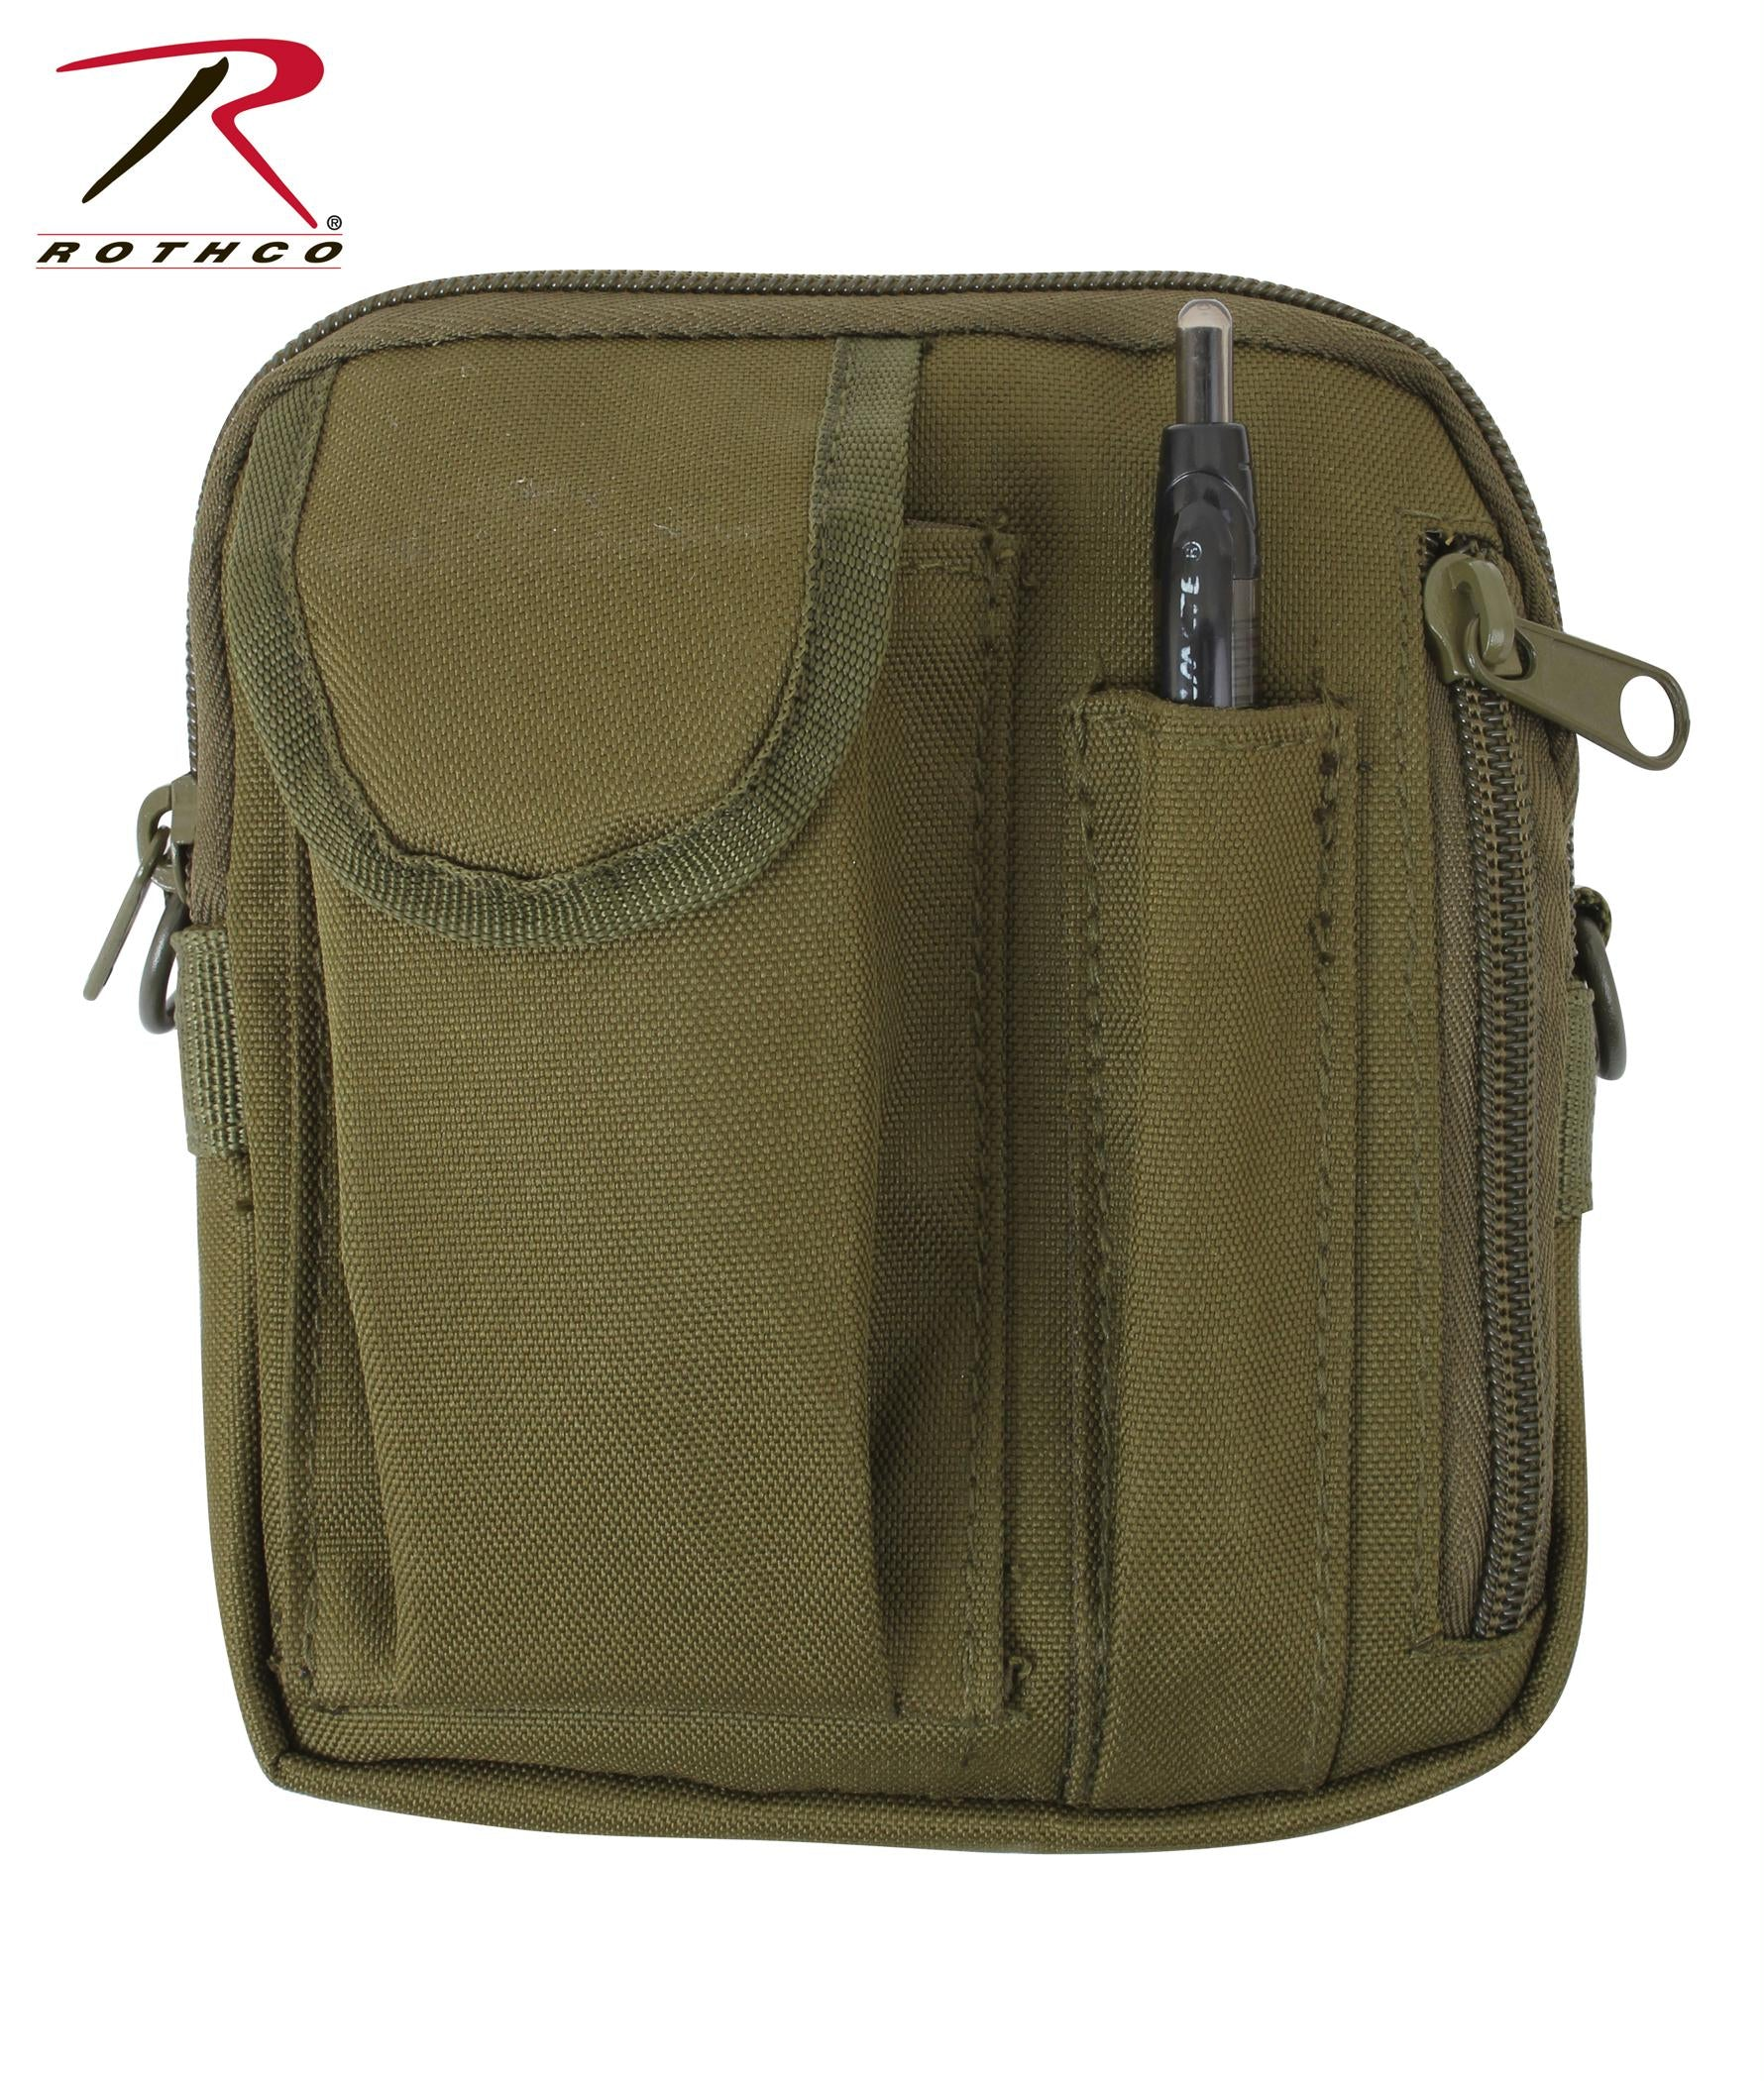 Rothco MOLLE Compatible Excursion Organizer - Olive Drab